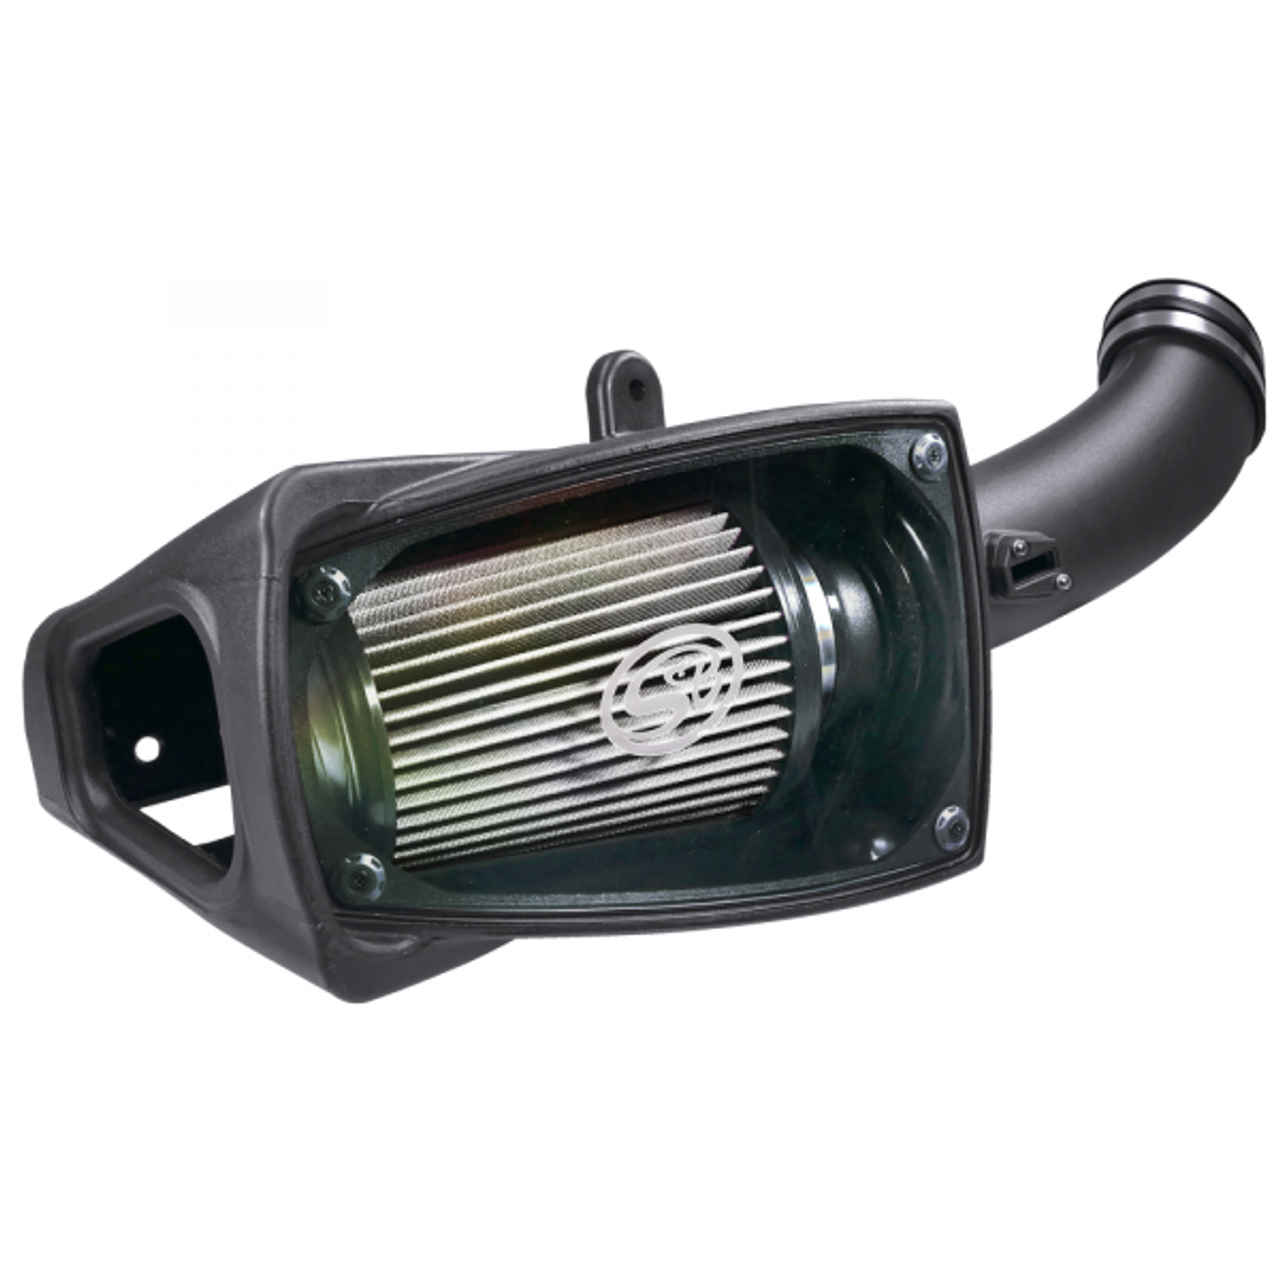 S&B 75-5104D Cold Air Intake w/Dry Filter | 11-16 Ford 6.7L Powerstroke